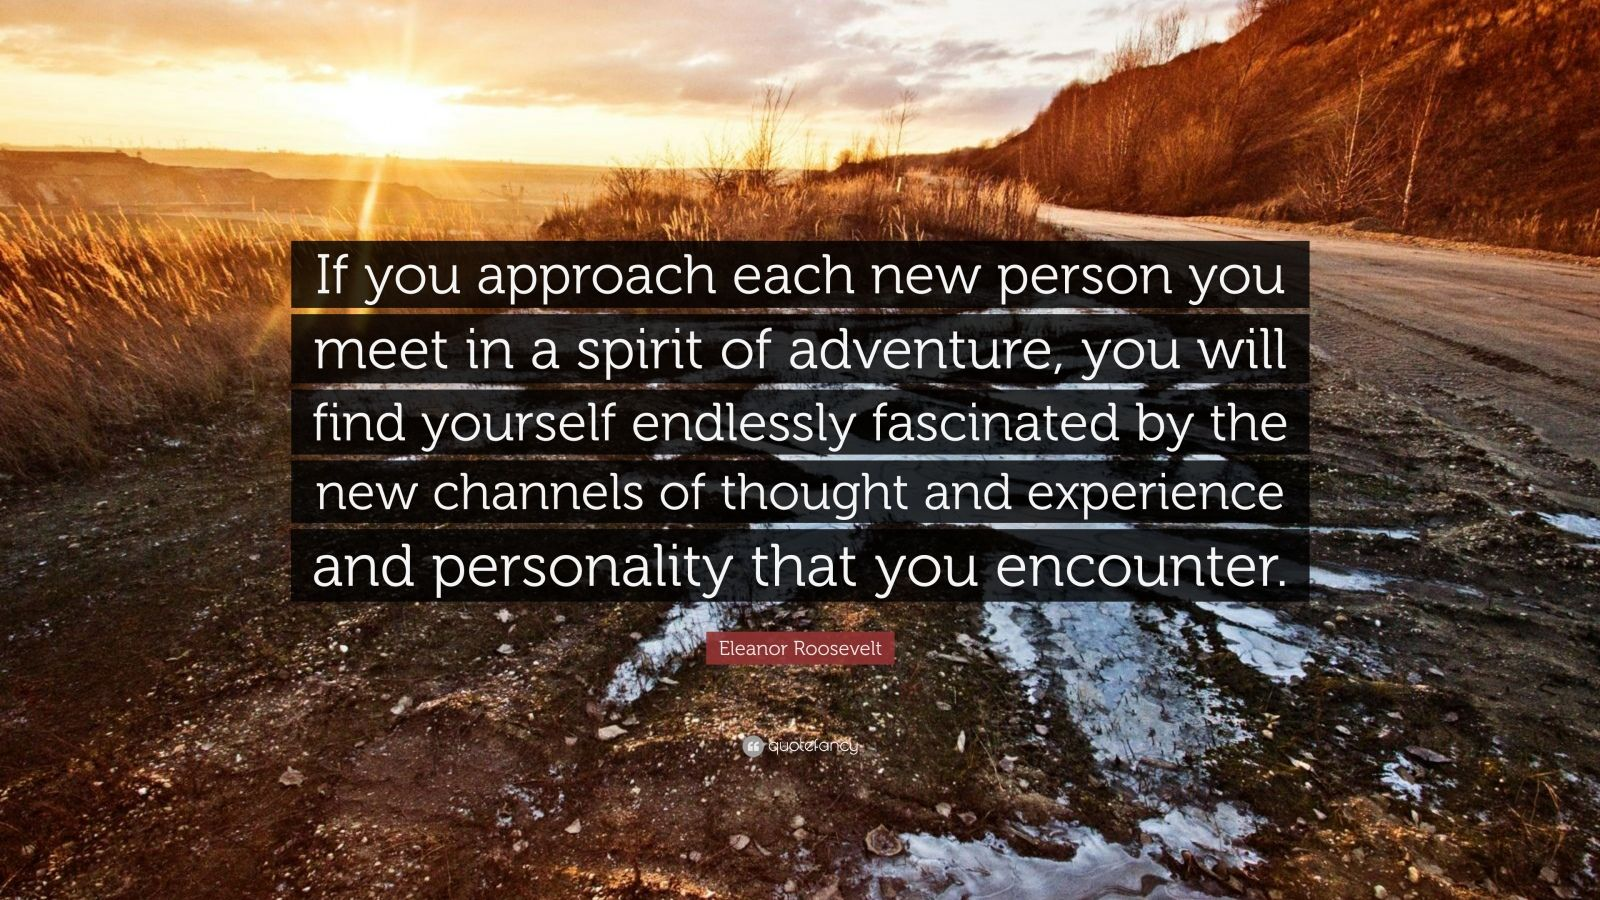 "Eleanor Roosevelt Quote: ""If you approach each new person you meet in a spirit of adventure, you will find yourself endlessly fascinated by the new channels of thought and experience and personality that you encounter."""